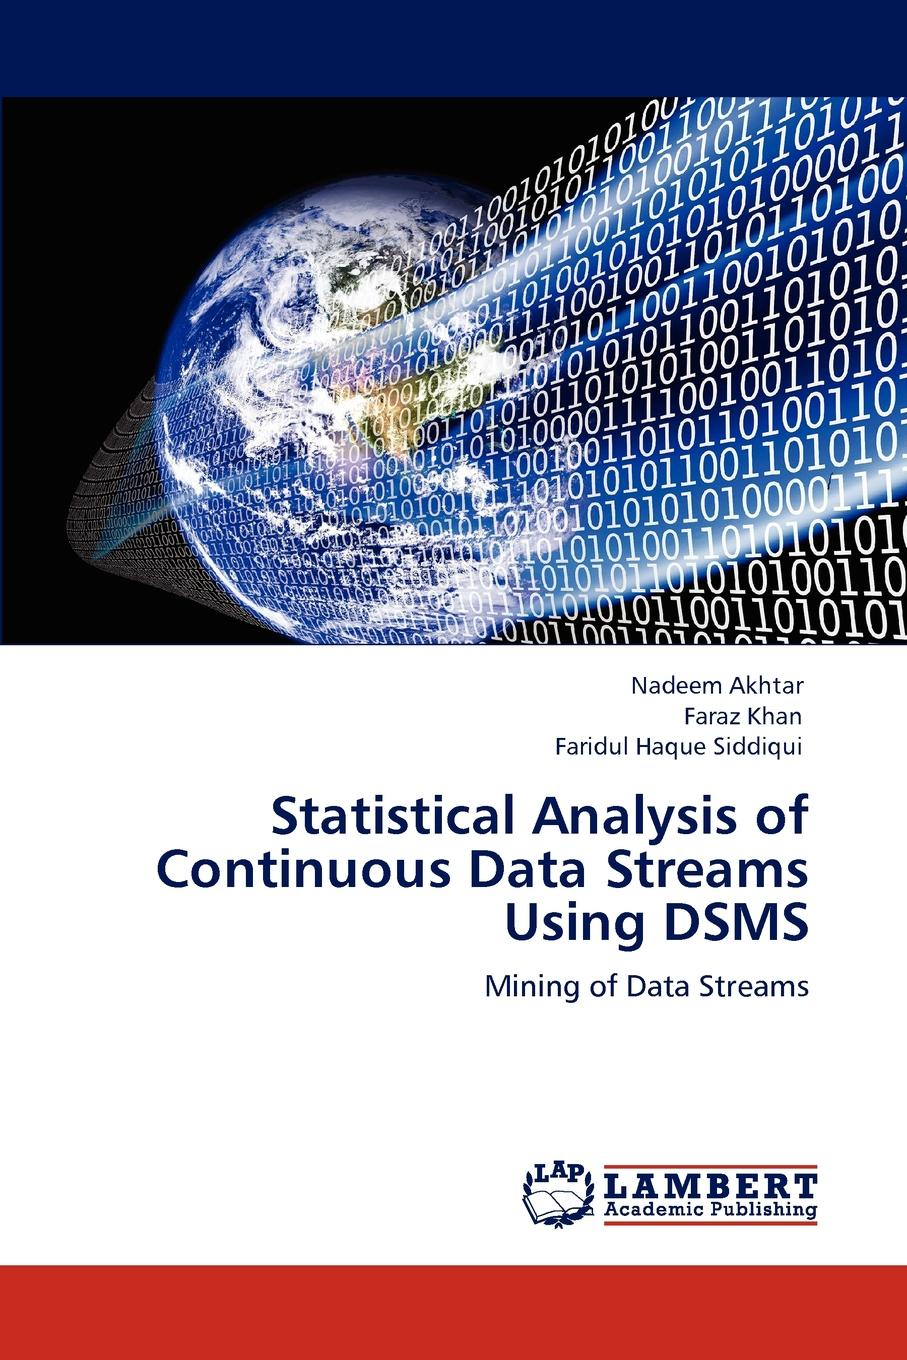 Nadeem Akhtar, Faraz Khan, Faridul Haque Siddiqui Statistical Analysis of Continuous Data Streams Using DSMS plamen angelov autonomous learning systems from data streams to knowledge in real time